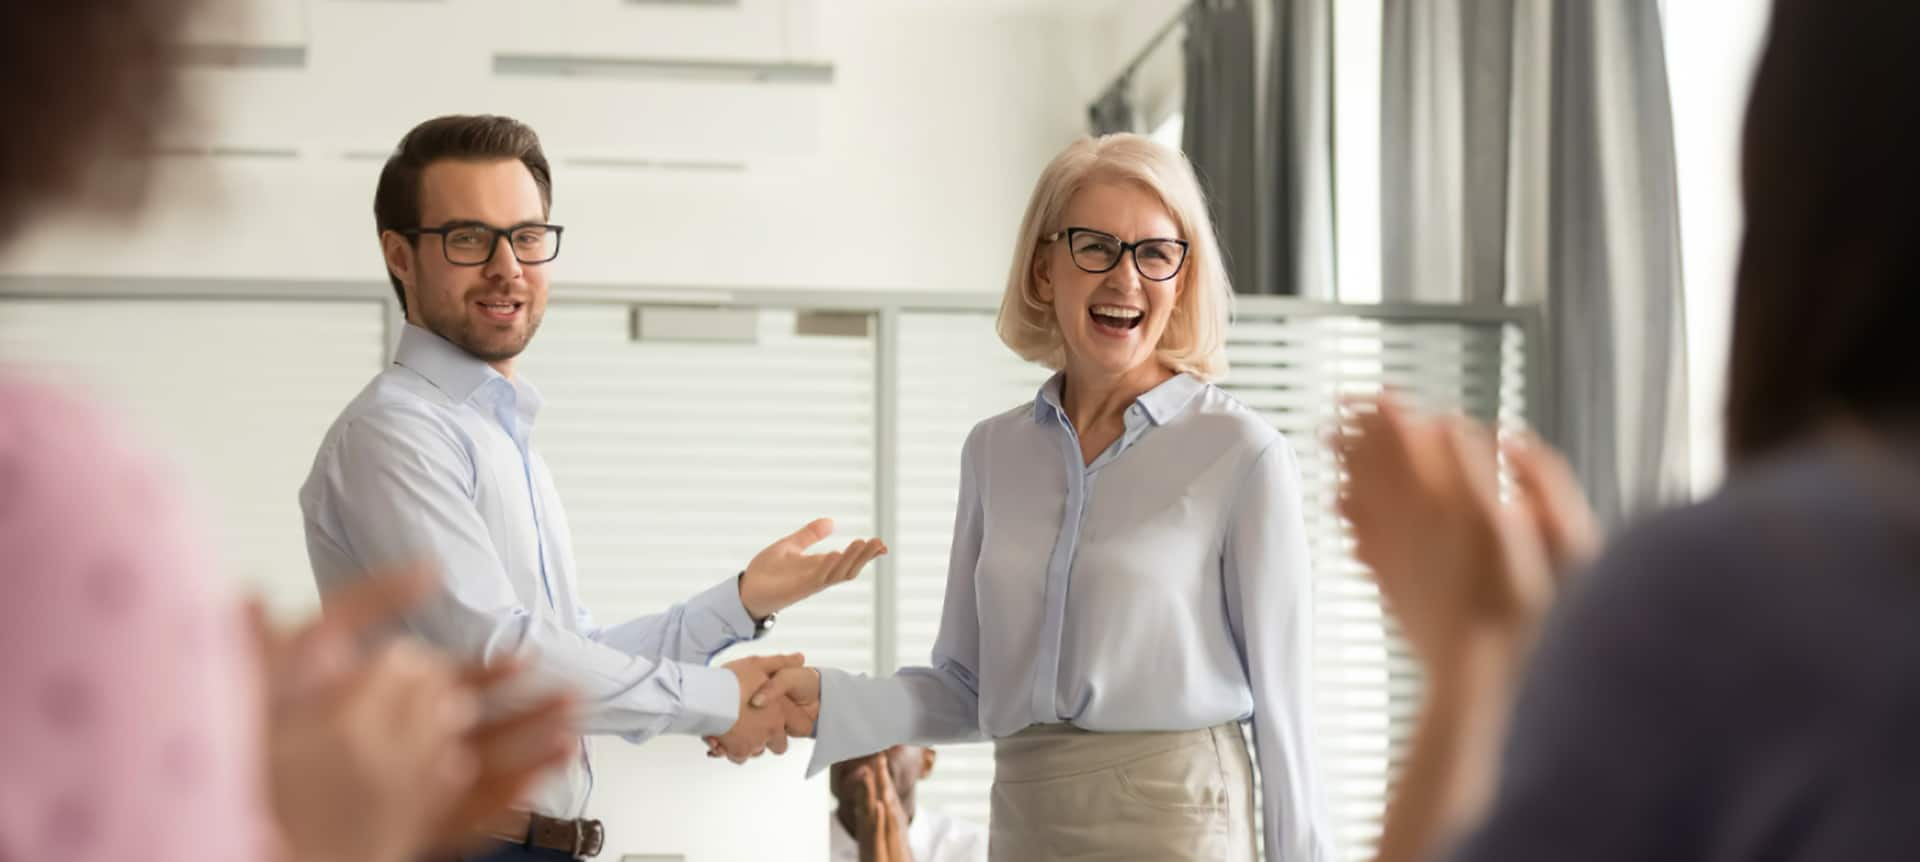 A manager rewarding his employee for living up to the company's core values